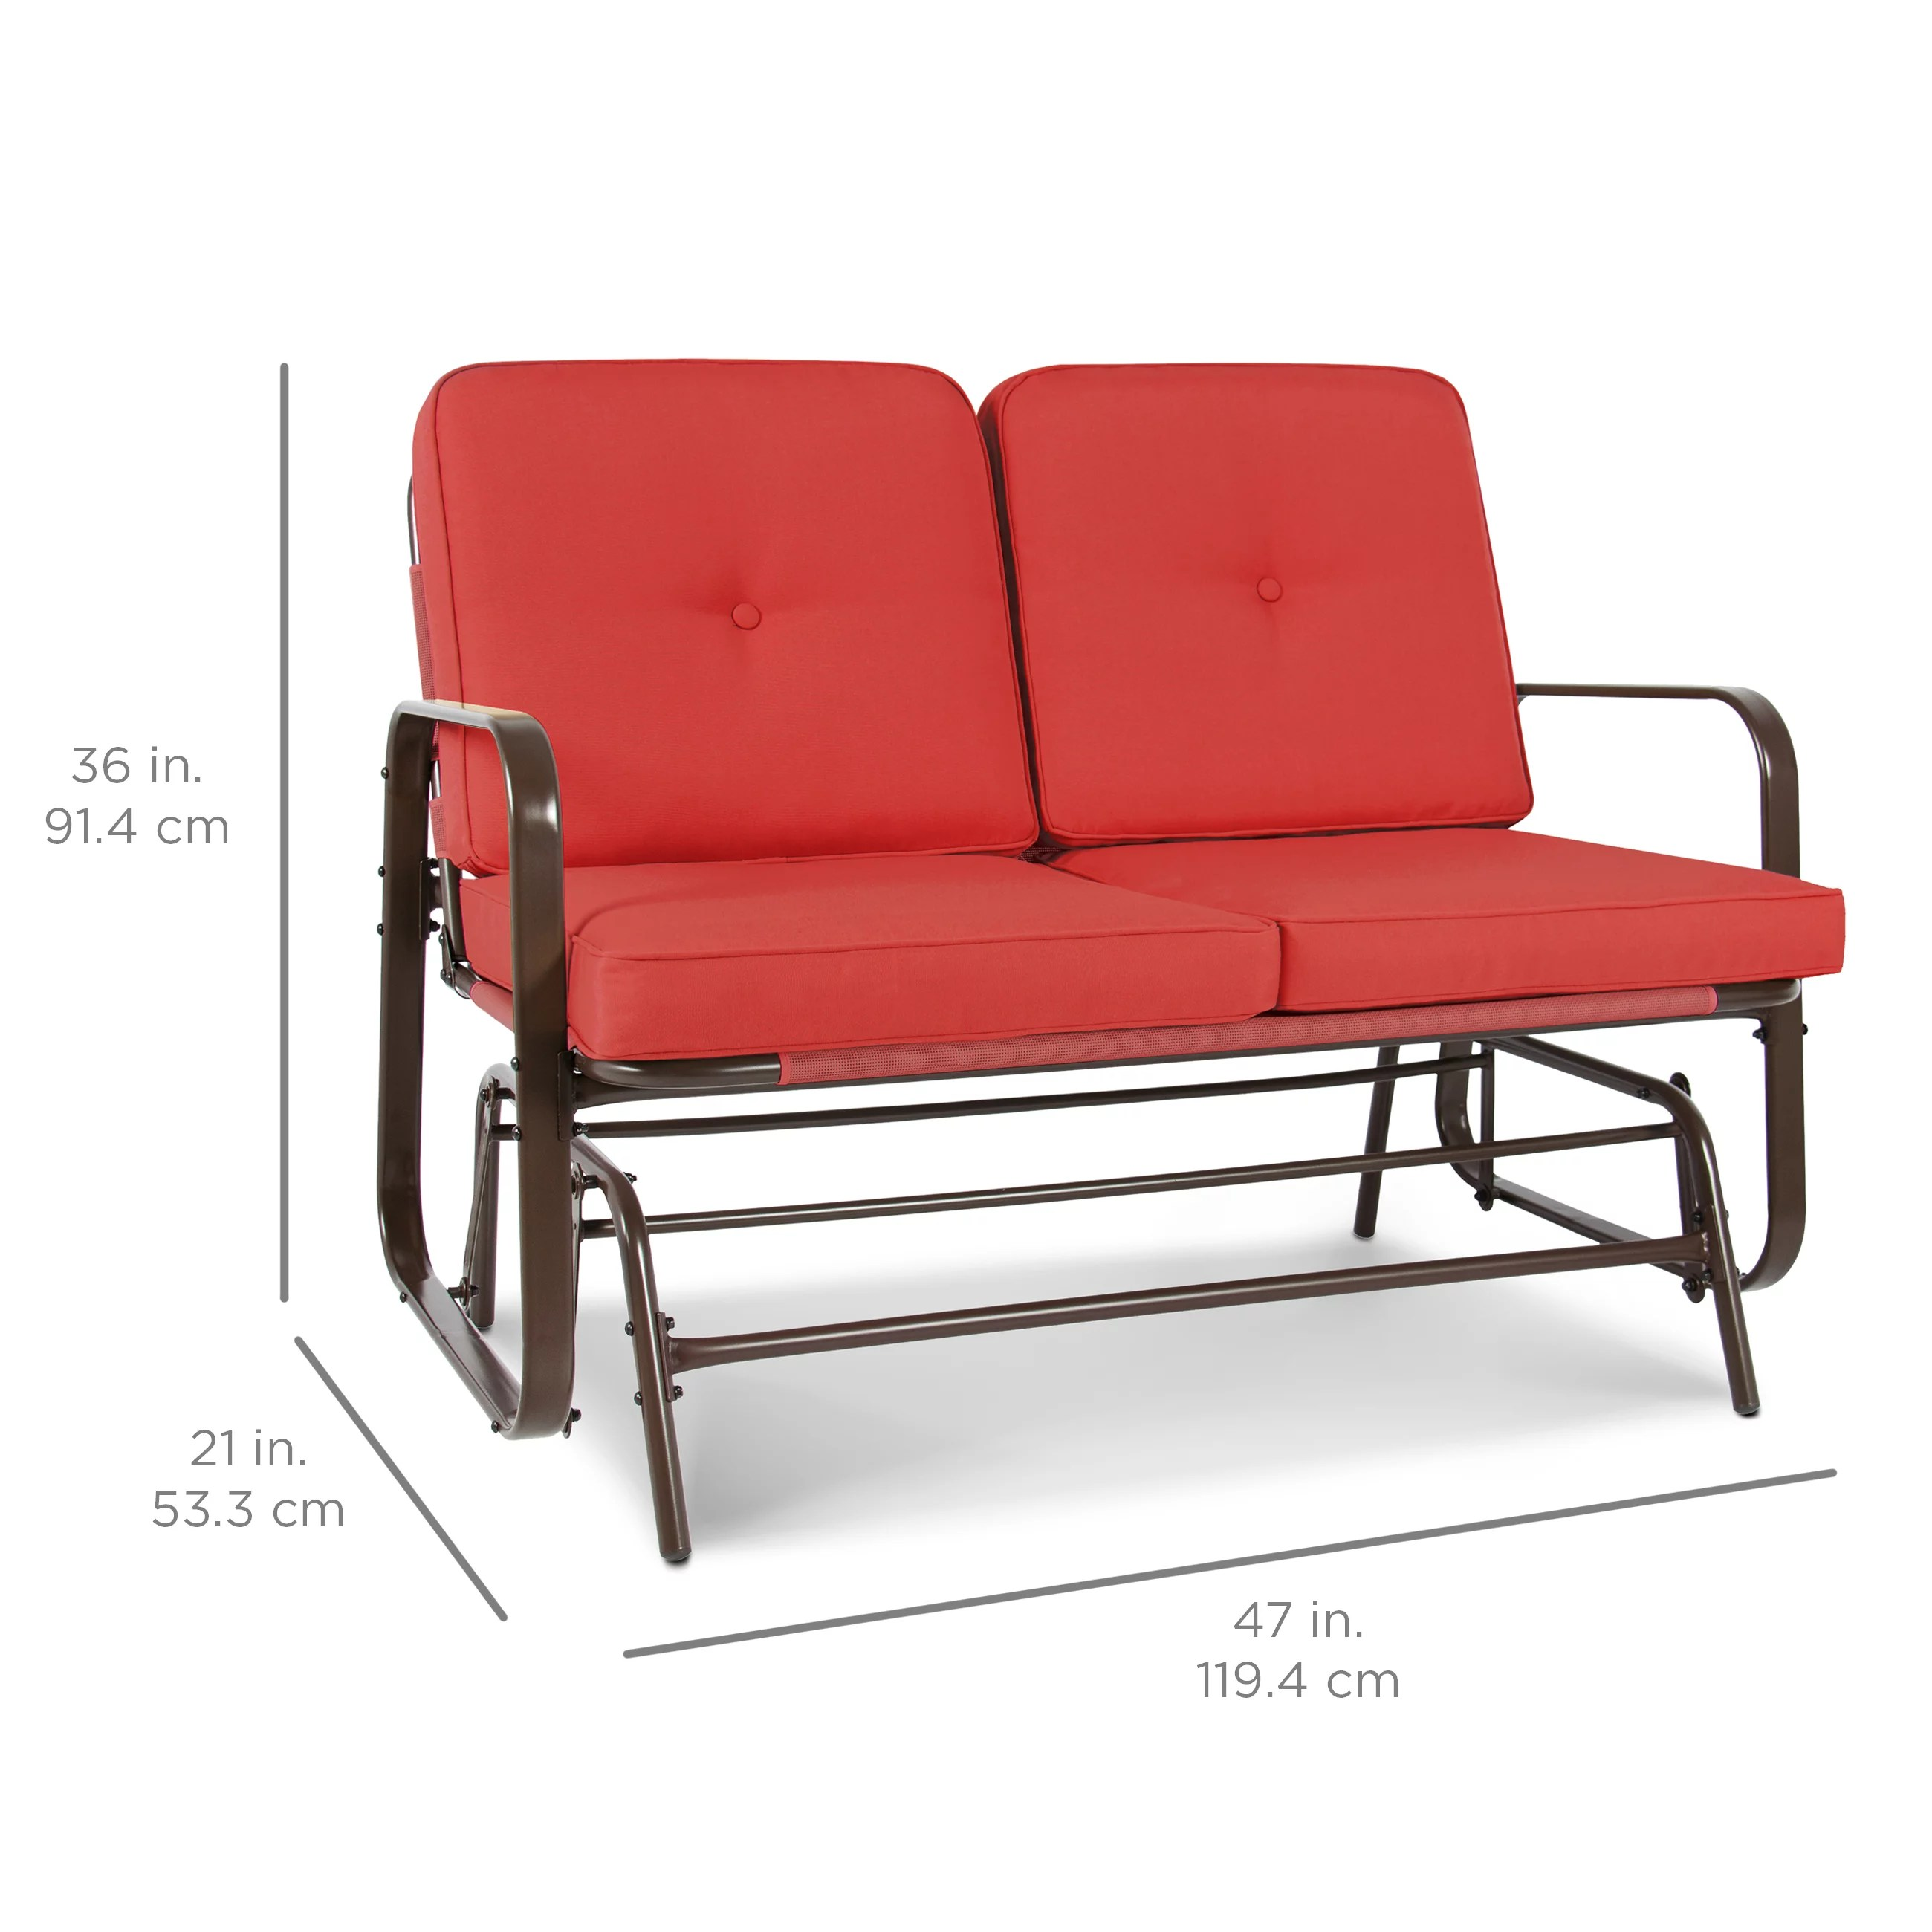 Best Choice Products 2 Person Outdoor Patio Glider Loveseat Rocking Chair W Uv Resistant Cushions Red Orange Walmart Com Walmart Com